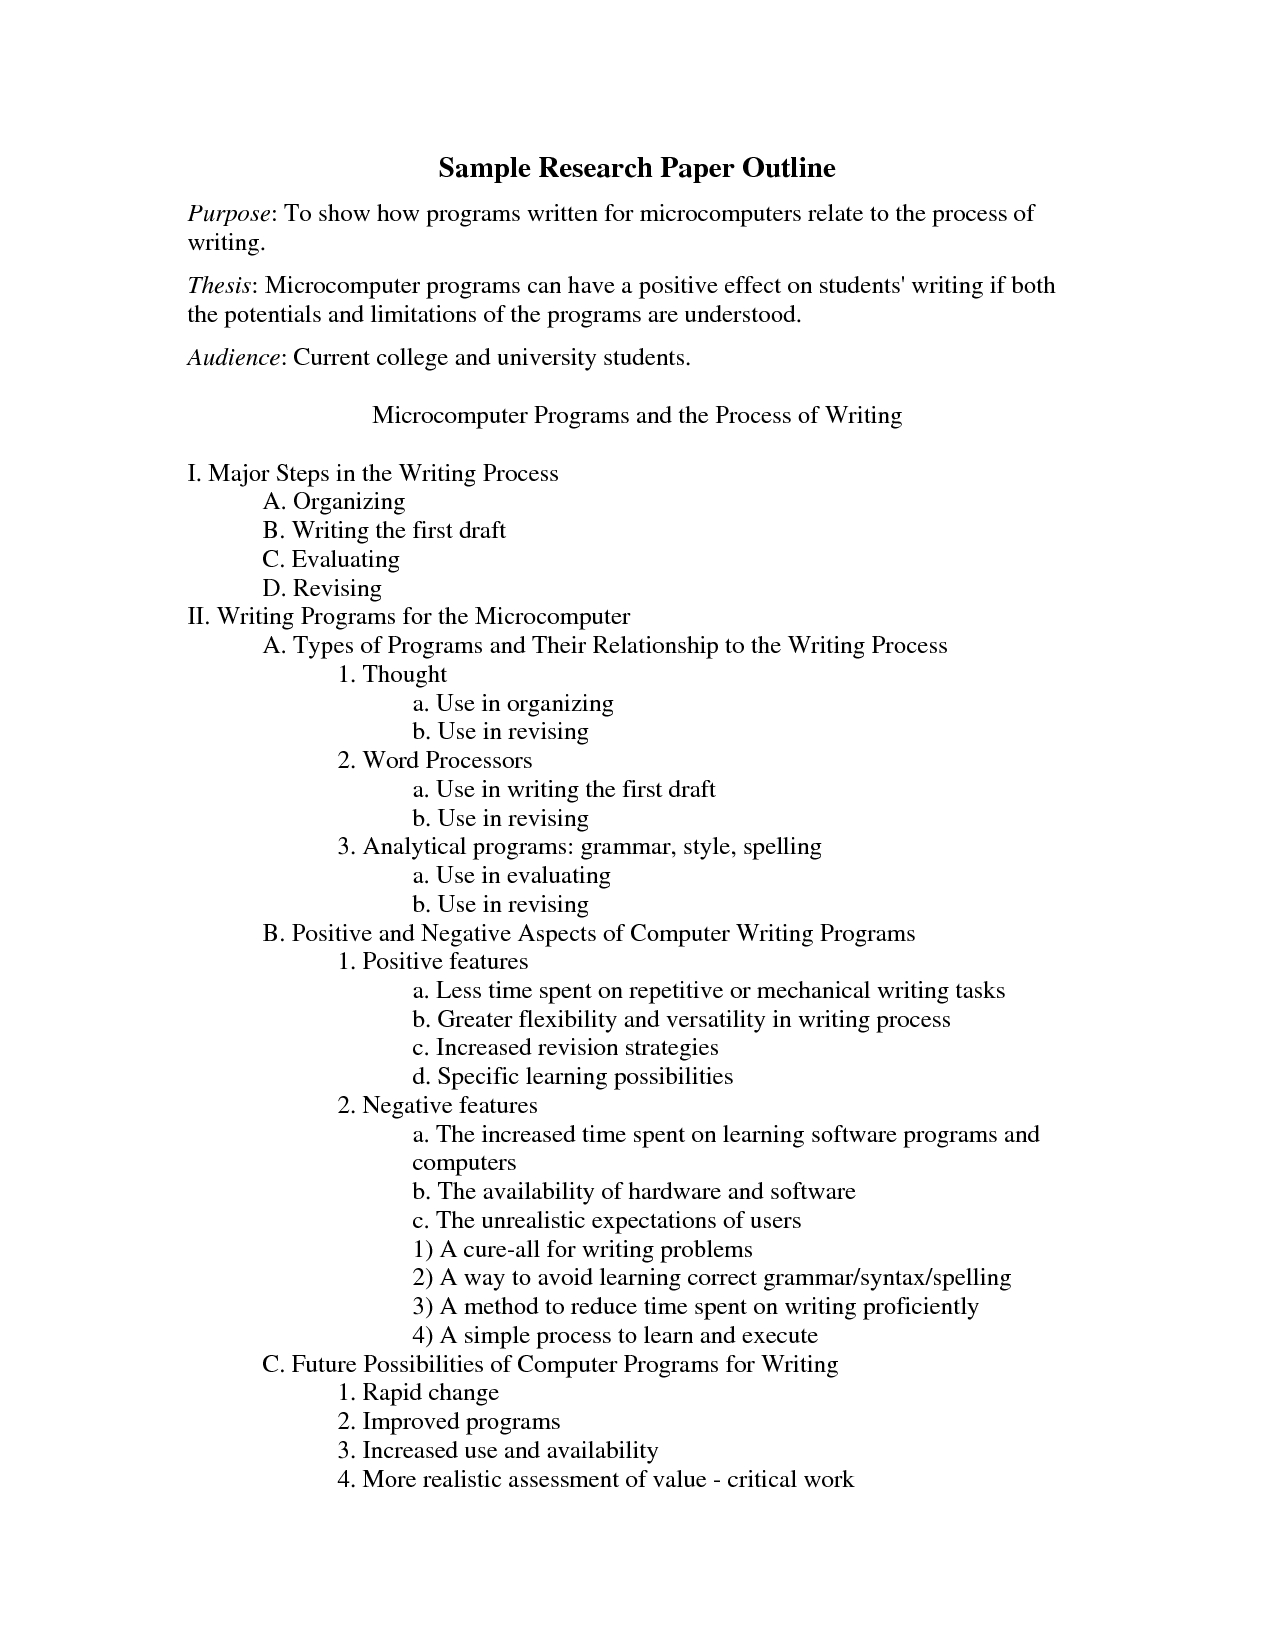 008 Research Paper Example Of Good Outline College Format Gosu Talentrank Co With Regard To Unique A Apa History Full